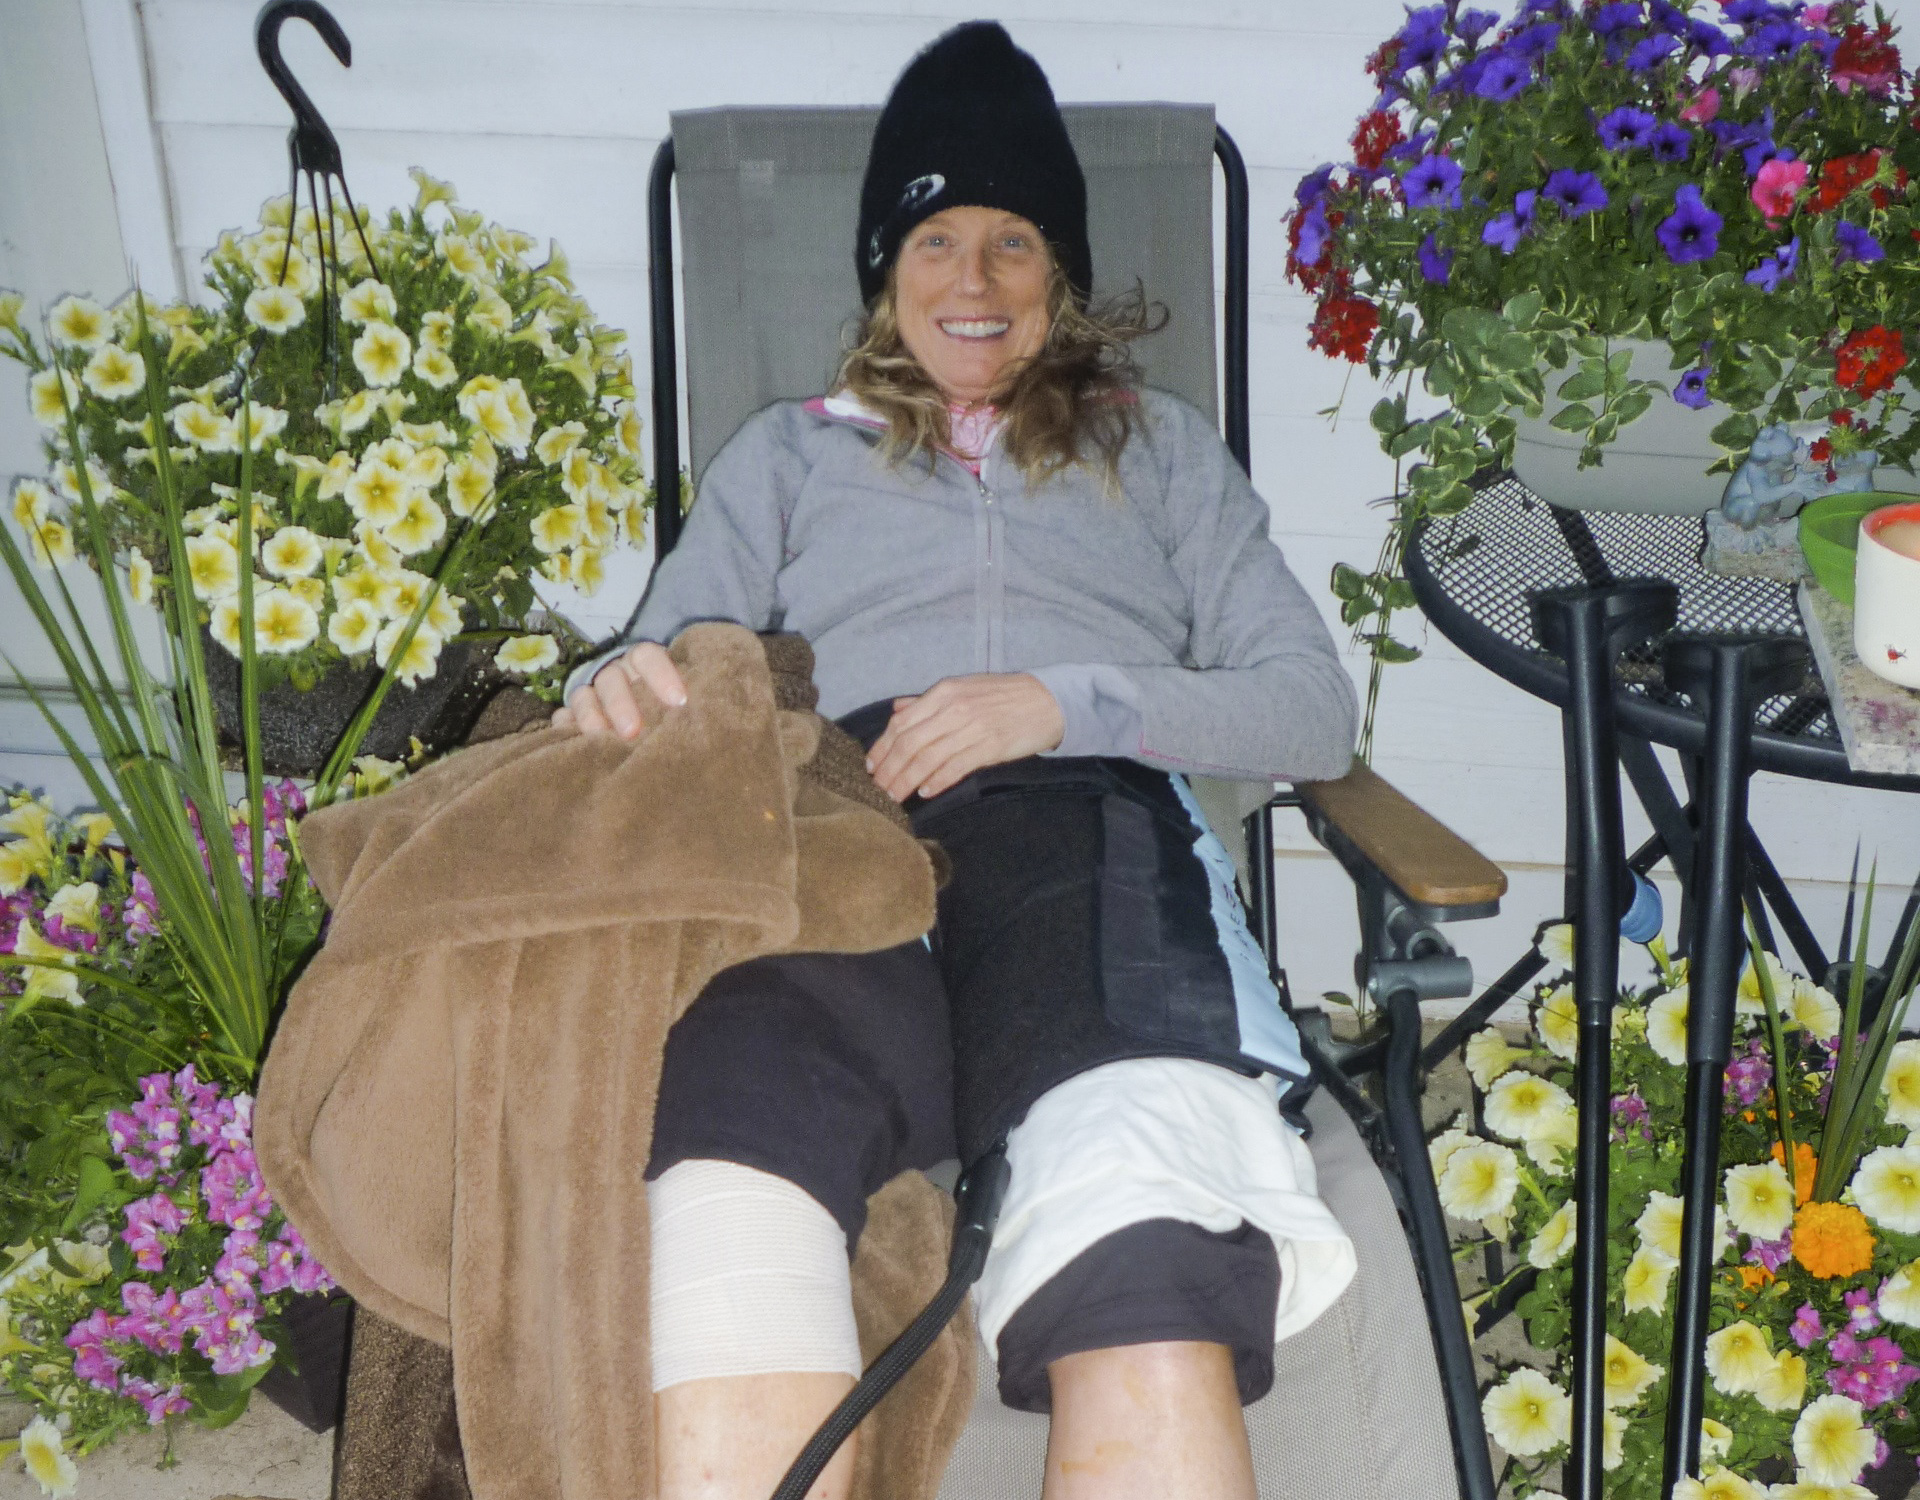 Photo: Extreme sports injury 1 | Michelle Grainger after surgery